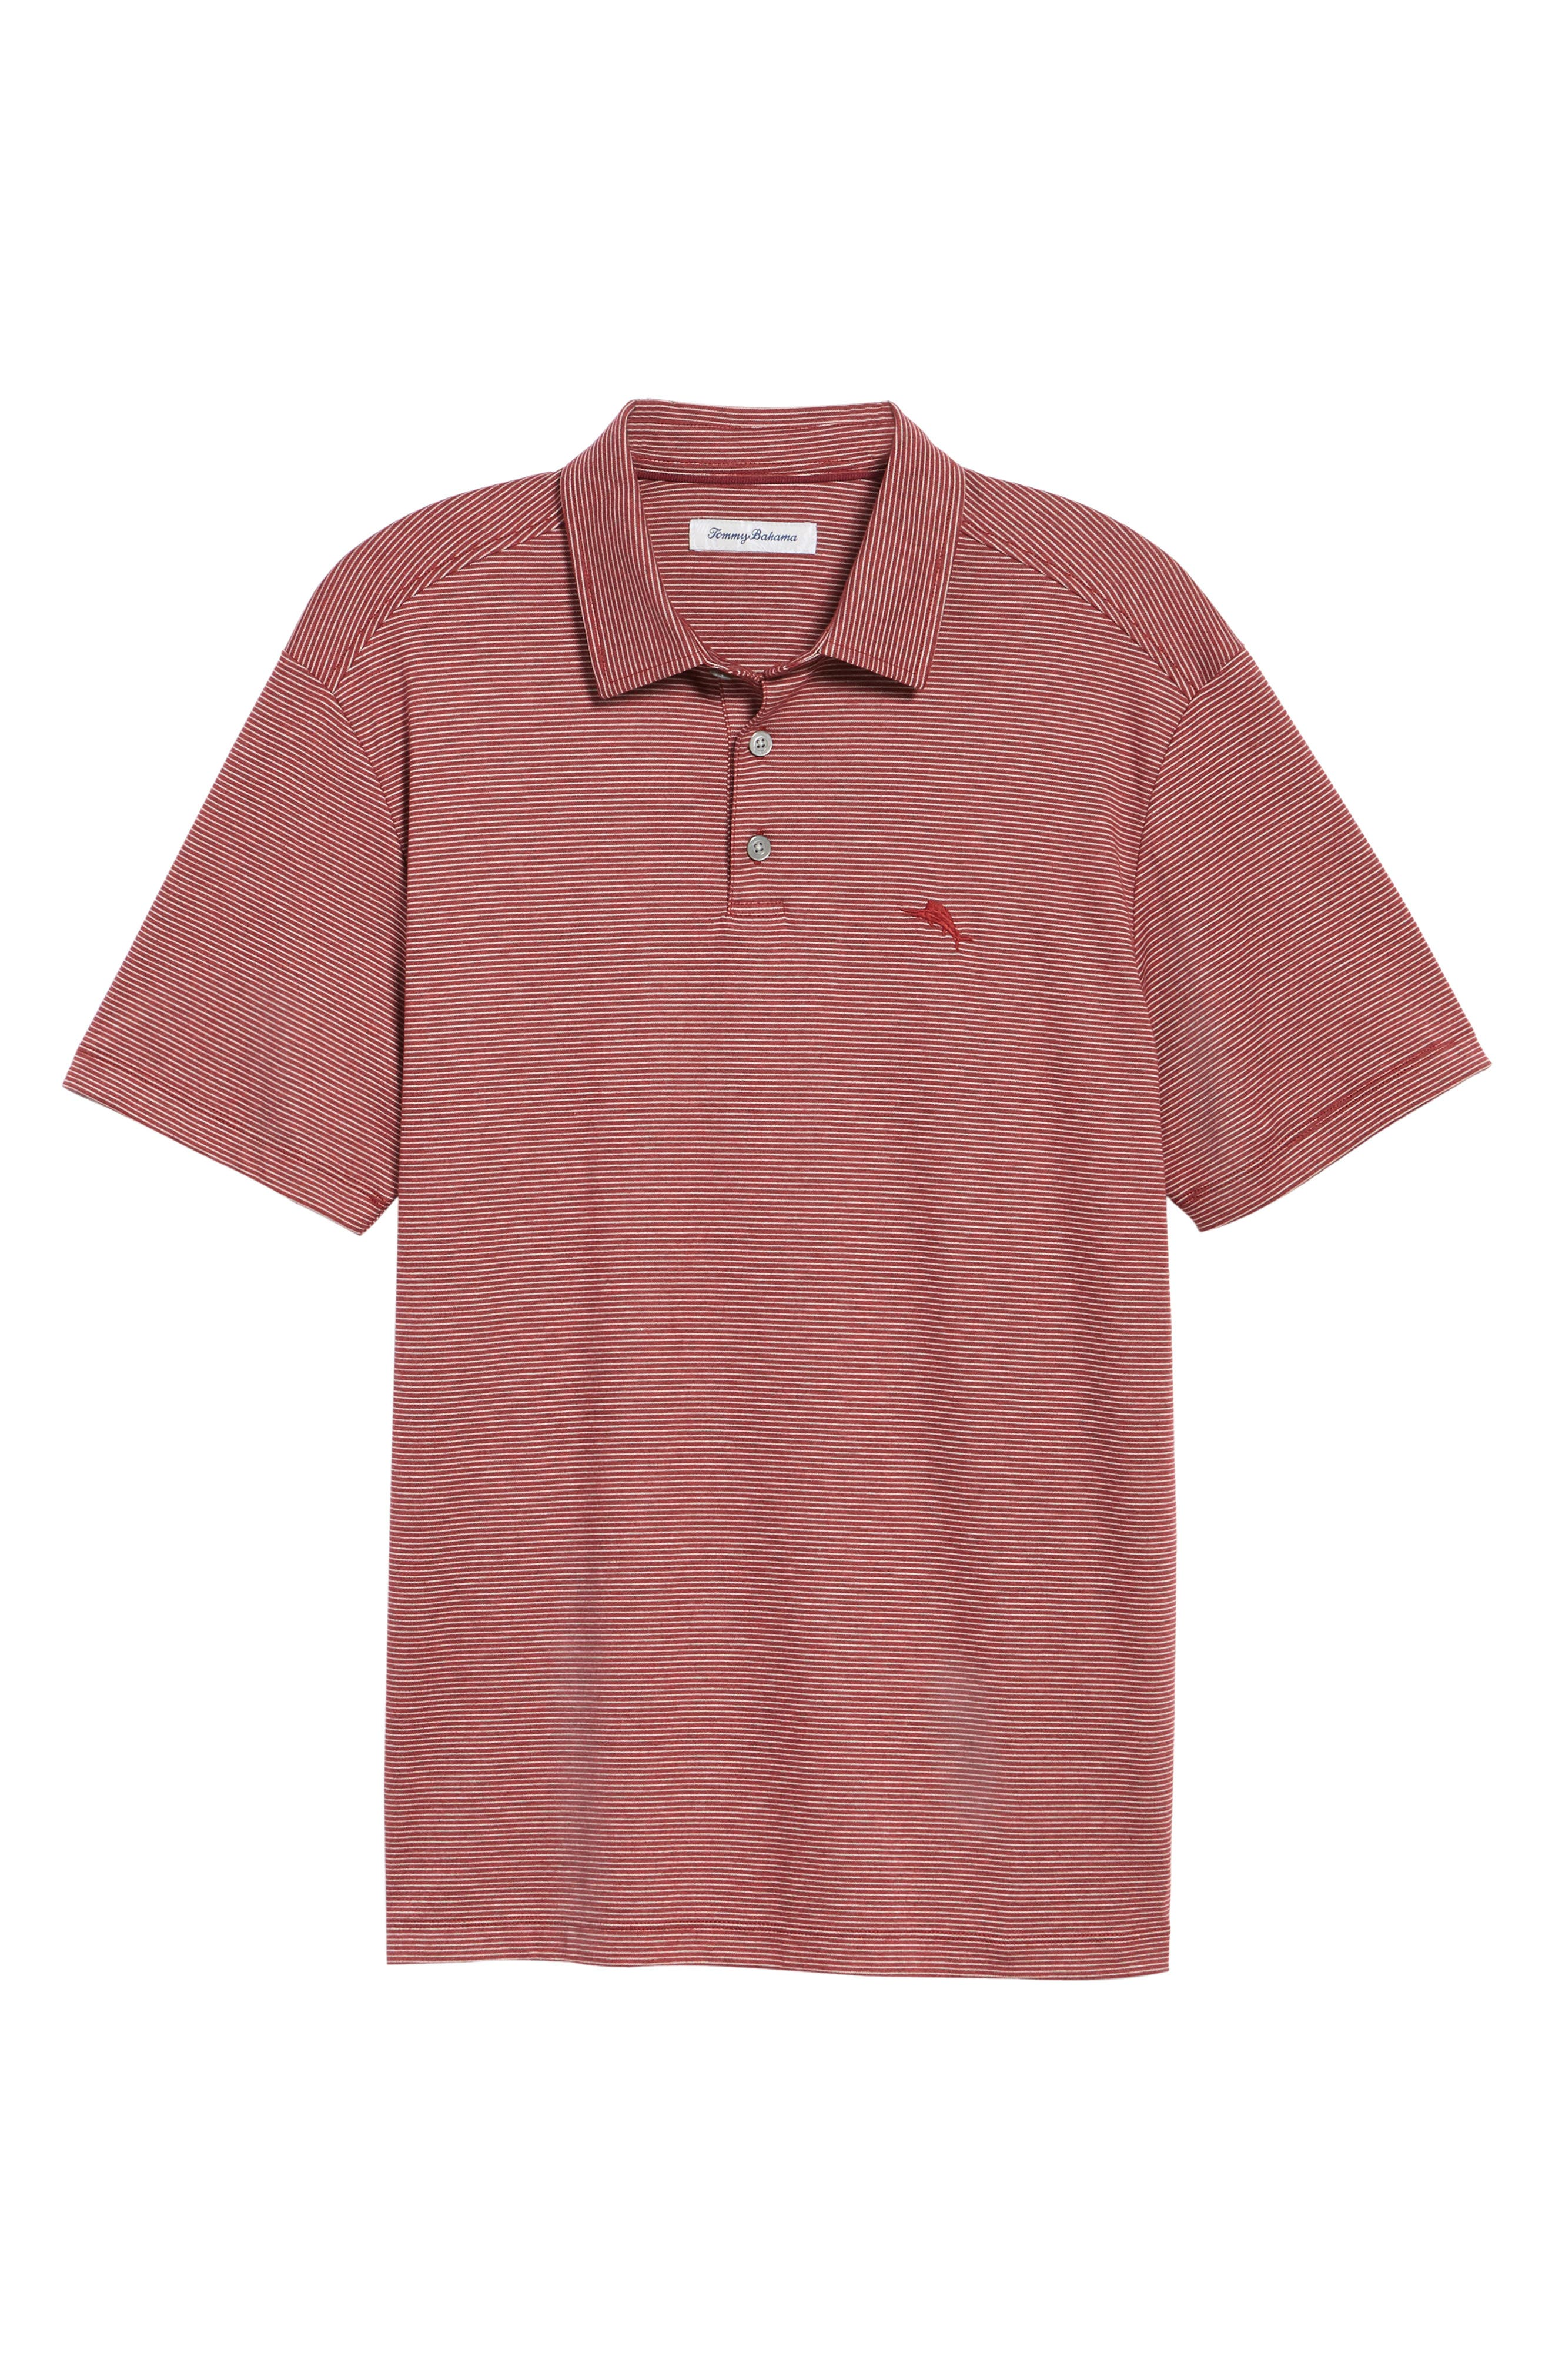 Pacific Shore Polo,                             Alternate thumbnail 6, color,                             Beet Red Heather